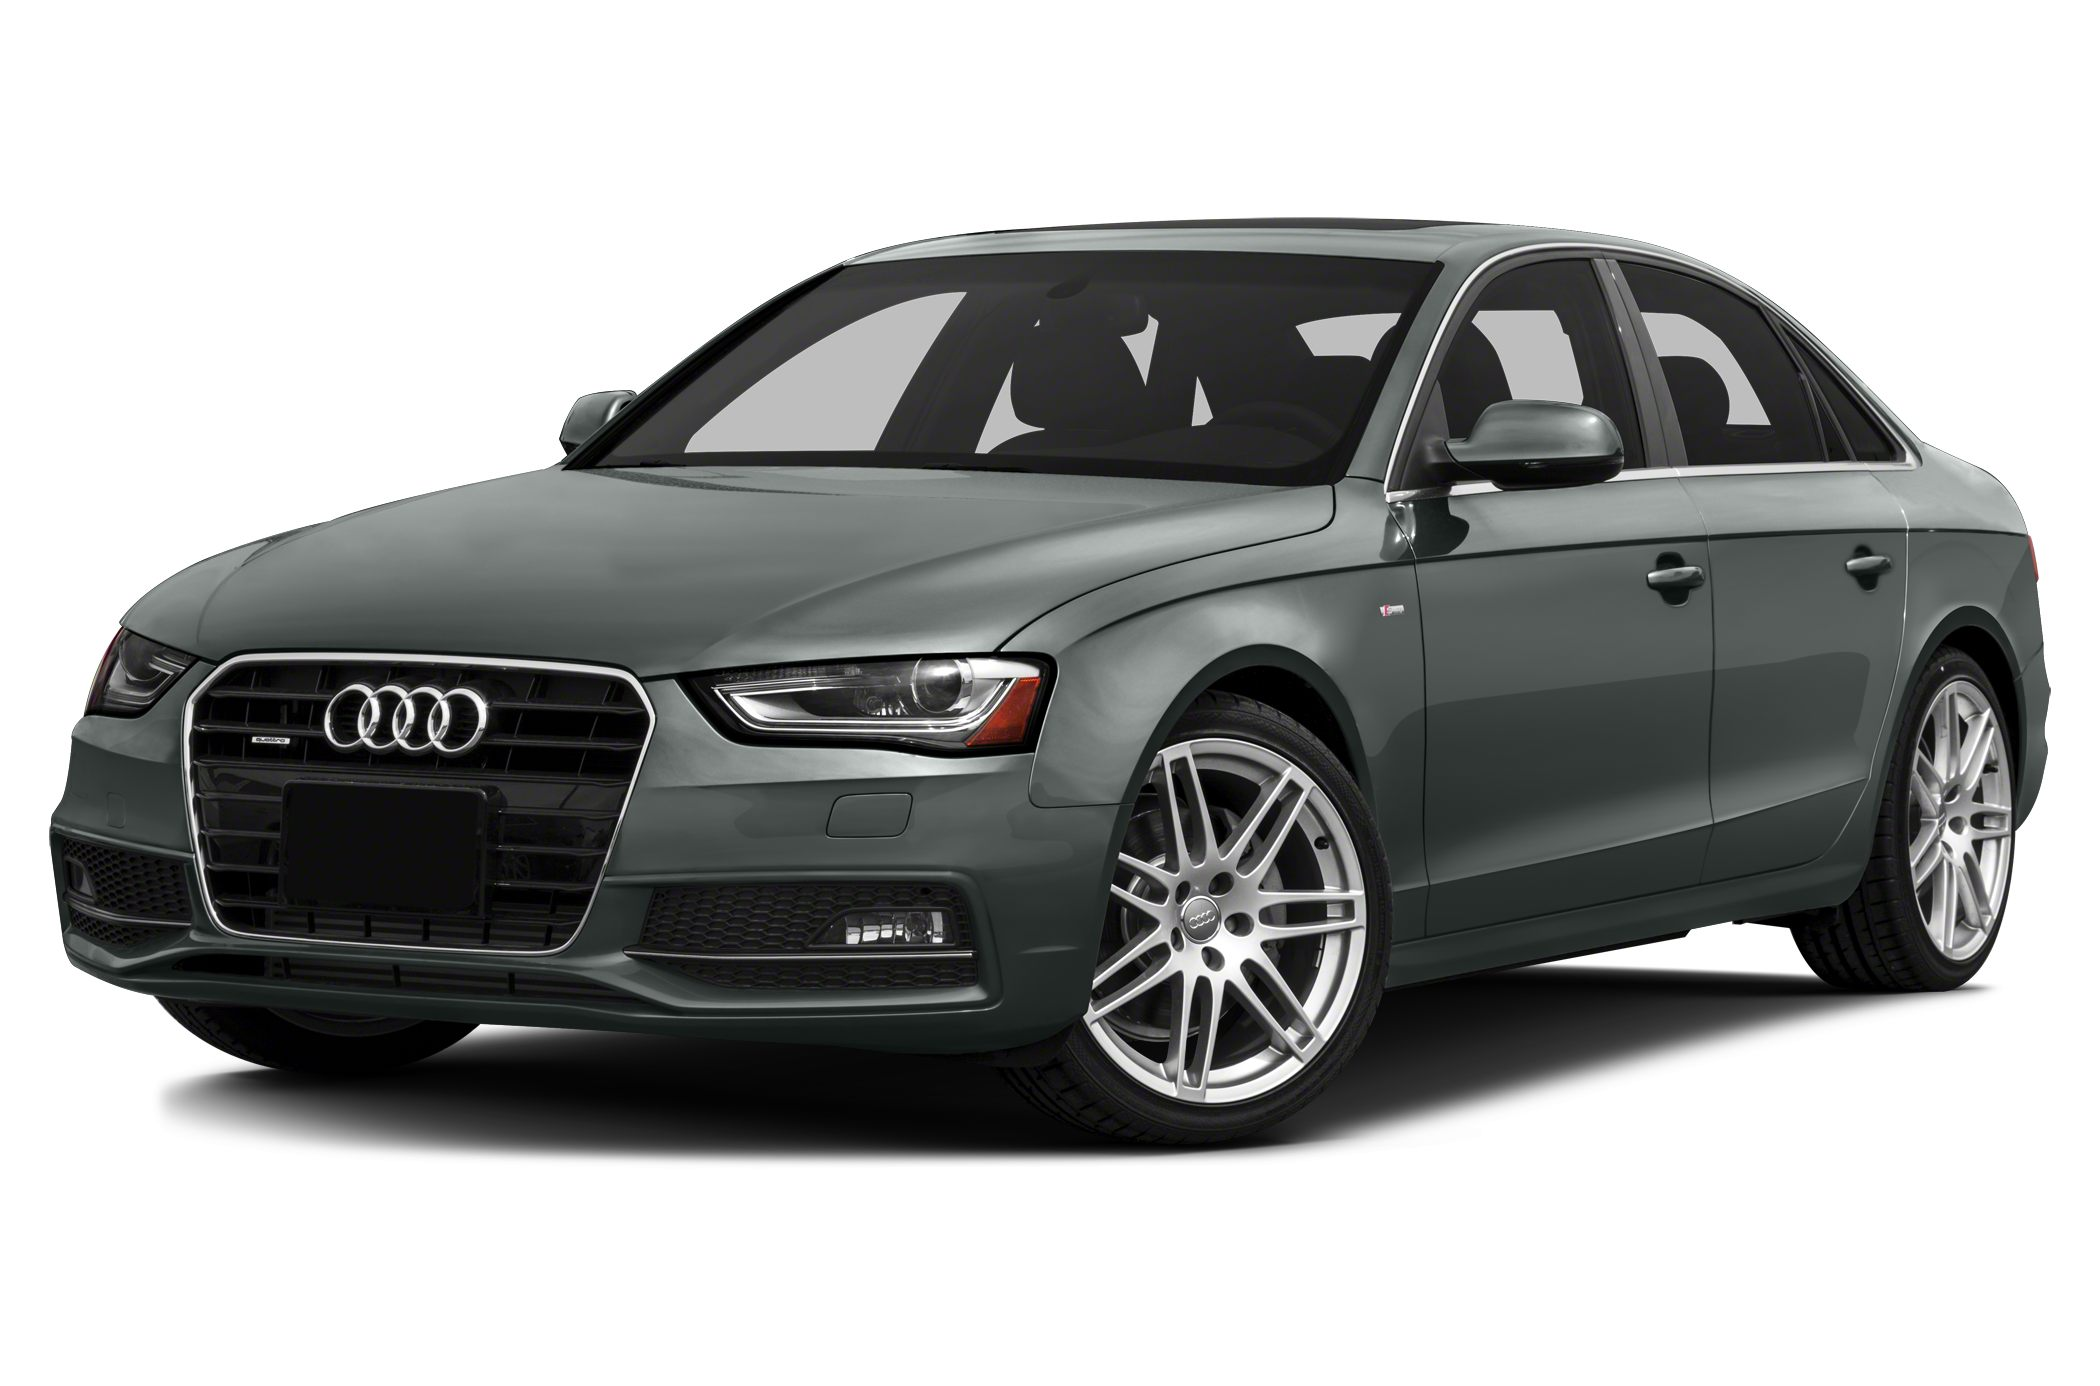 2014 Audi A4 20T quattro Premium  WHEN IT COMES TOEXCELLENCE IN USED CAR SALES YOU KNOW YOURE